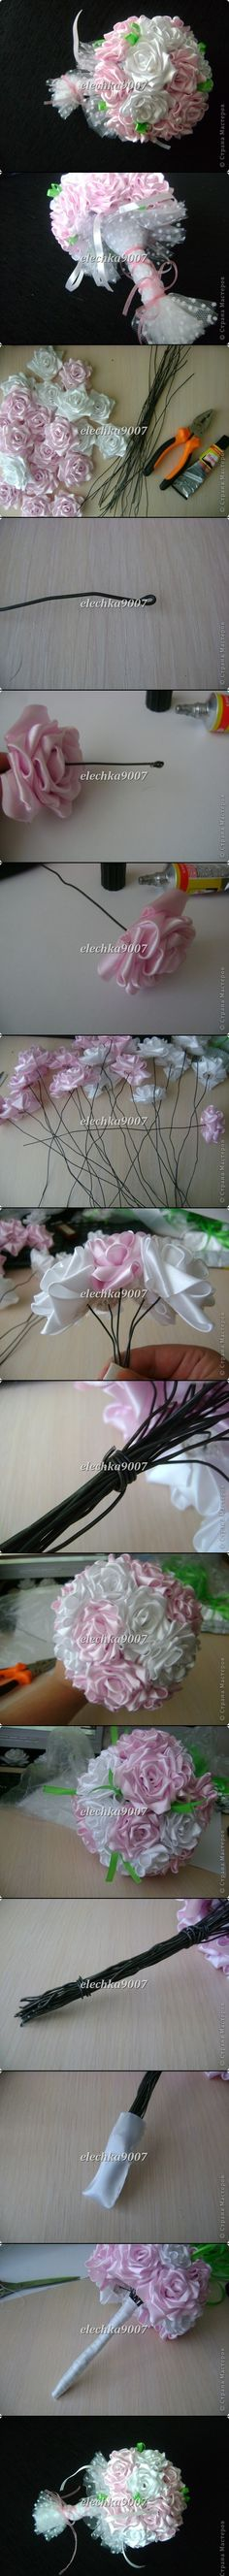 How to make a ribbon bouquet Ribbon Art, Diy Ribbon, Fabric Ribbon, Ribbon Crafts, Flower Crafts, Fabric Bouquet, Ribbon Bouquet, Diy Bouquet, Rose Bouquet